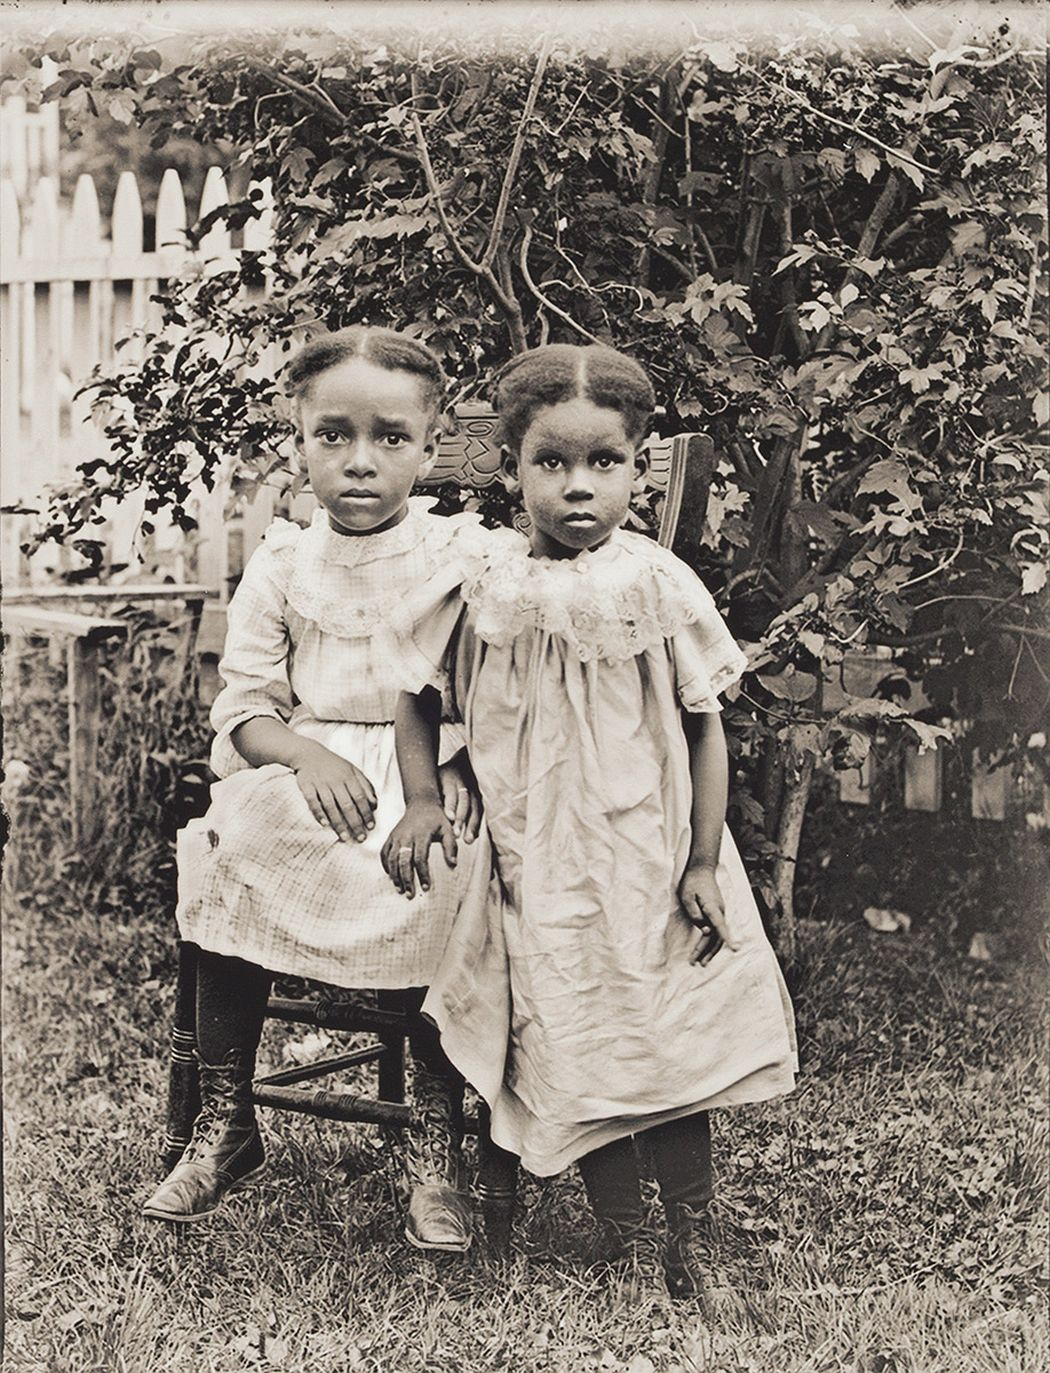 Portrait of the Jackson Children, about 1900, printed 2016, archival inkjet print, E.132.16.9 These girls were probably the grandchildren of former Virginia slave Bethany Veney, who authored a narrative of her life in slavery. Veney owned three houses in Worcester's Beaver Brook neighborhood and encouraged the migration of additional Virginia family members to the city. Unique among Bullard's photographs, the Jackson girls are in wrinkled dresses unlike his other portraits typically featuring subjects in more formal attire.